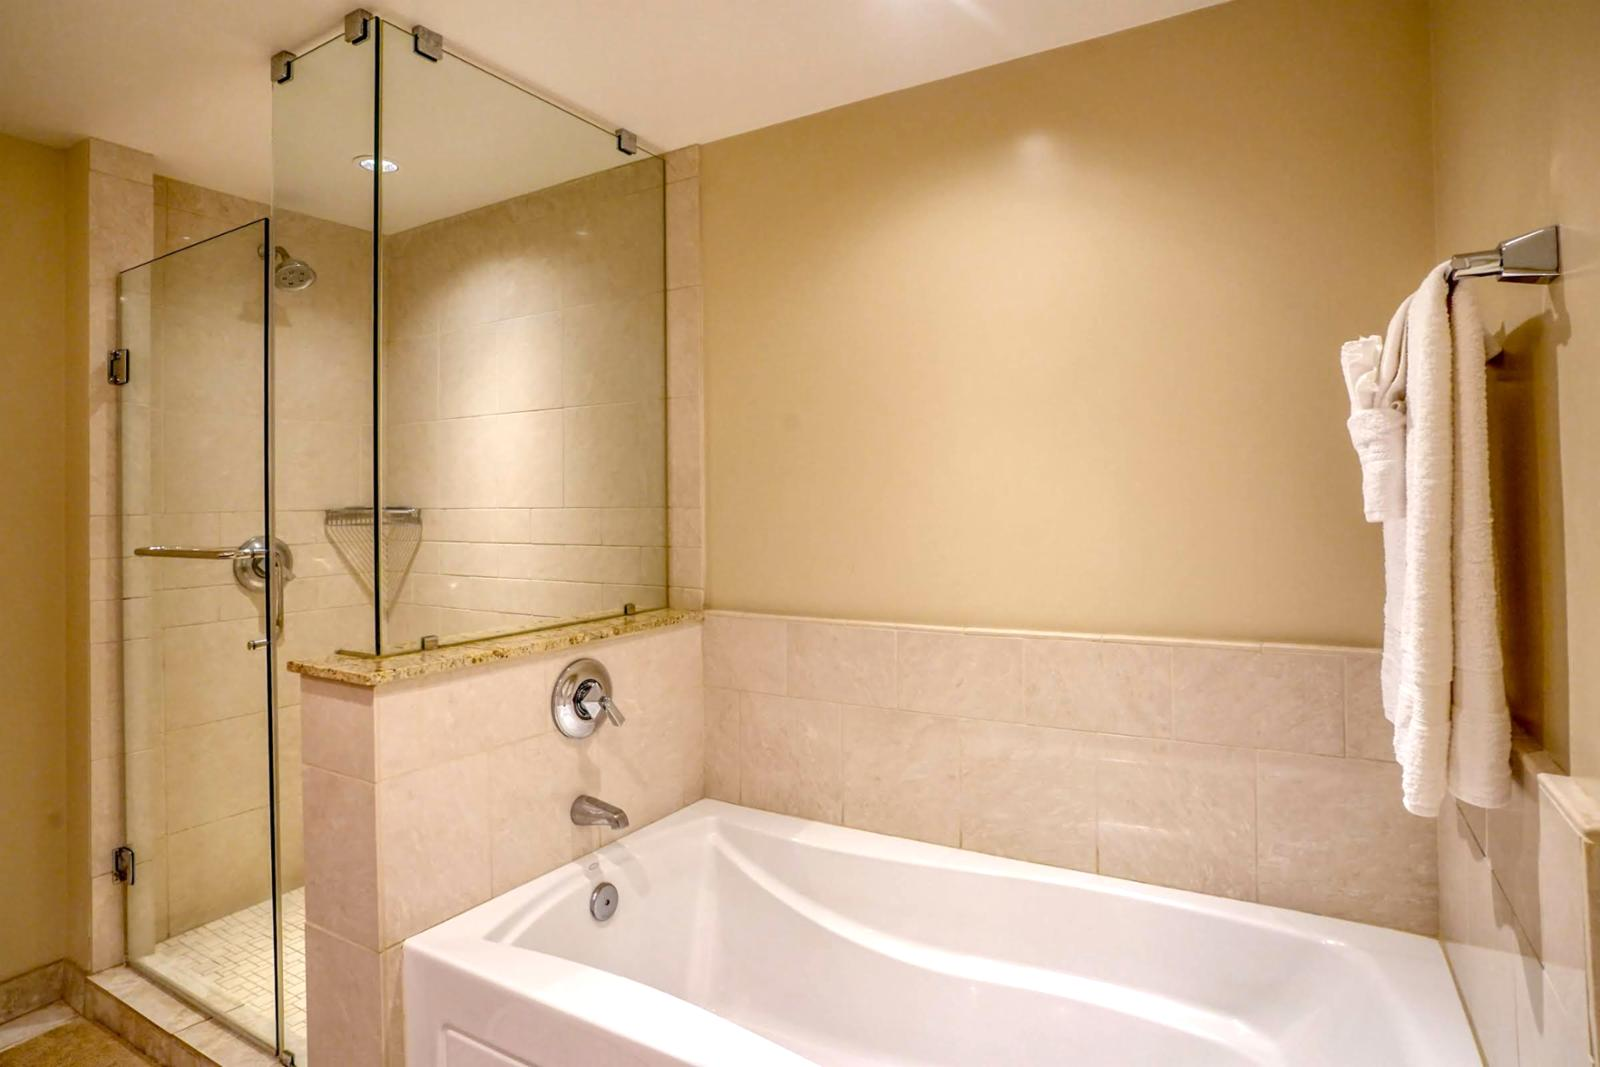 Floor to ceiling glass enclosed shower and tub combination, perfect for relaxing